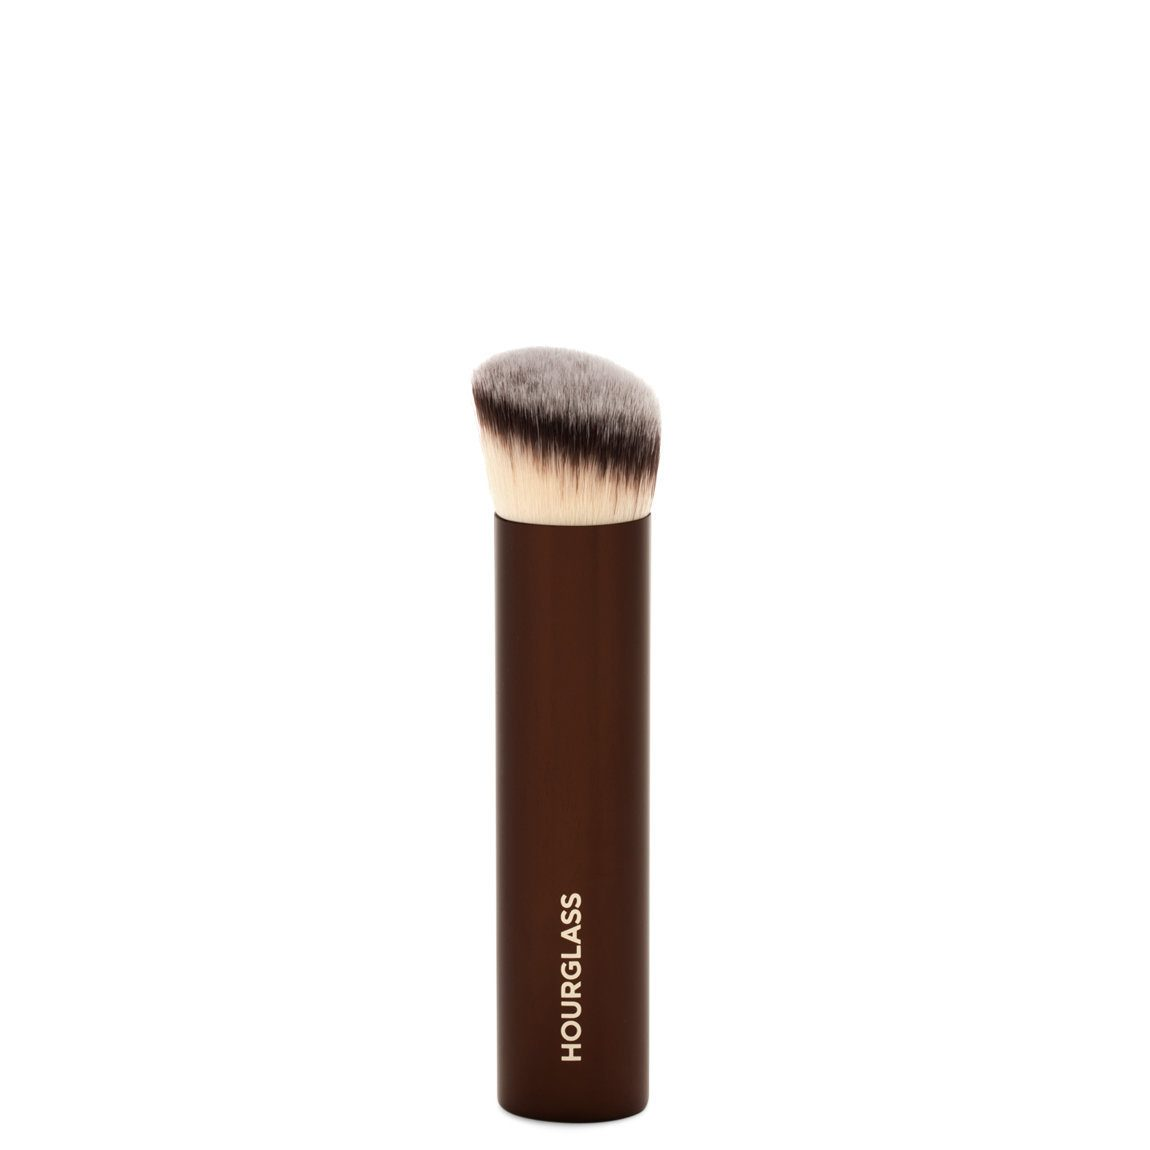 HOURGLASS FOUNDATION BRUSH COURTESY OF PINTREST